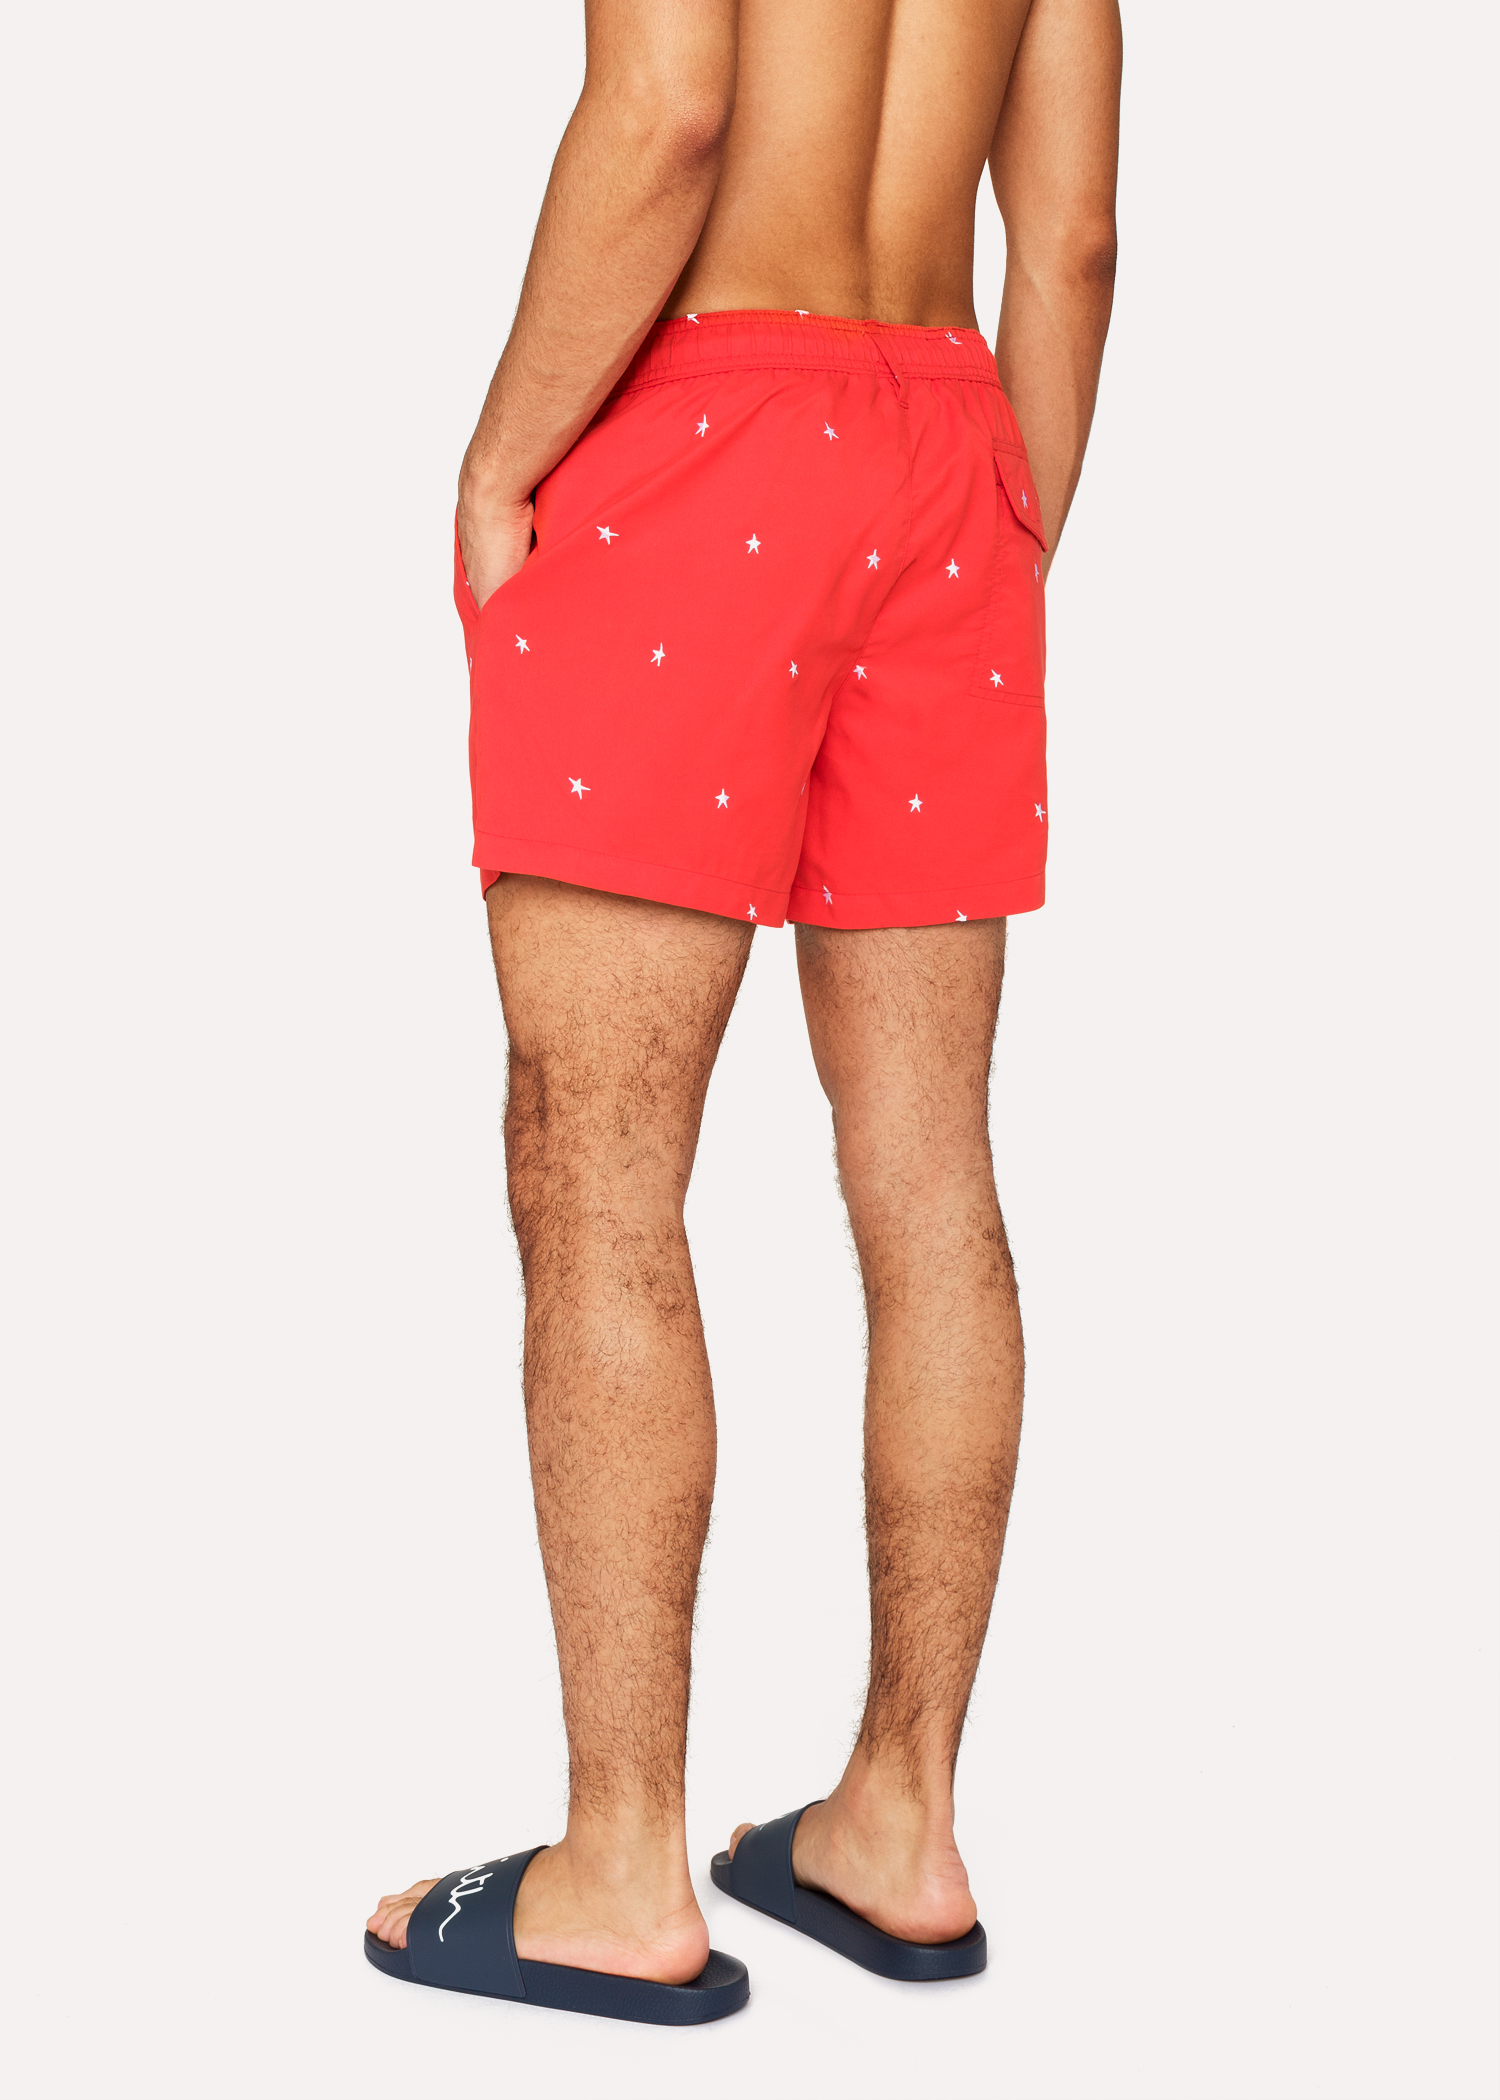 668022b470 Men's Red Swim Shorts With 'Star' Embroidery